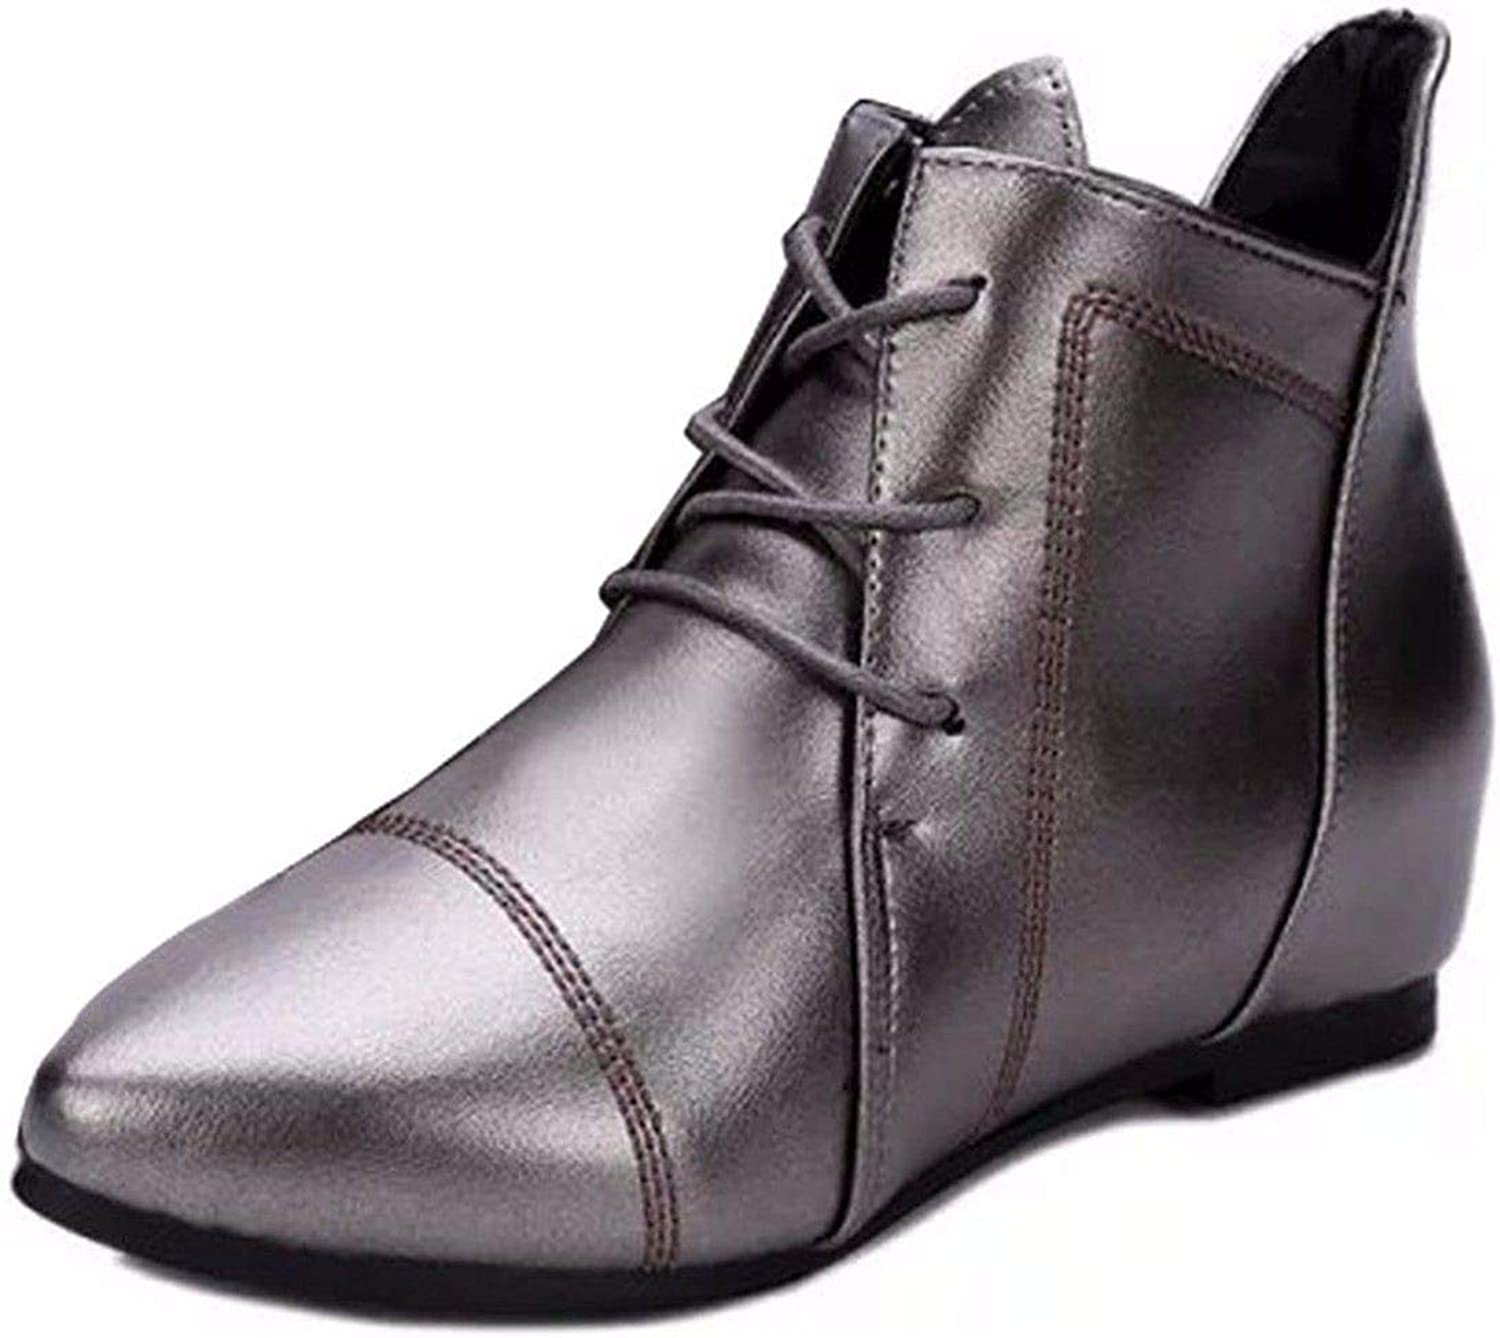 In Winter and Winter, Women's shoes lace up, Martin Boots, Women's Pointed pins, Big Yards and Short Boots